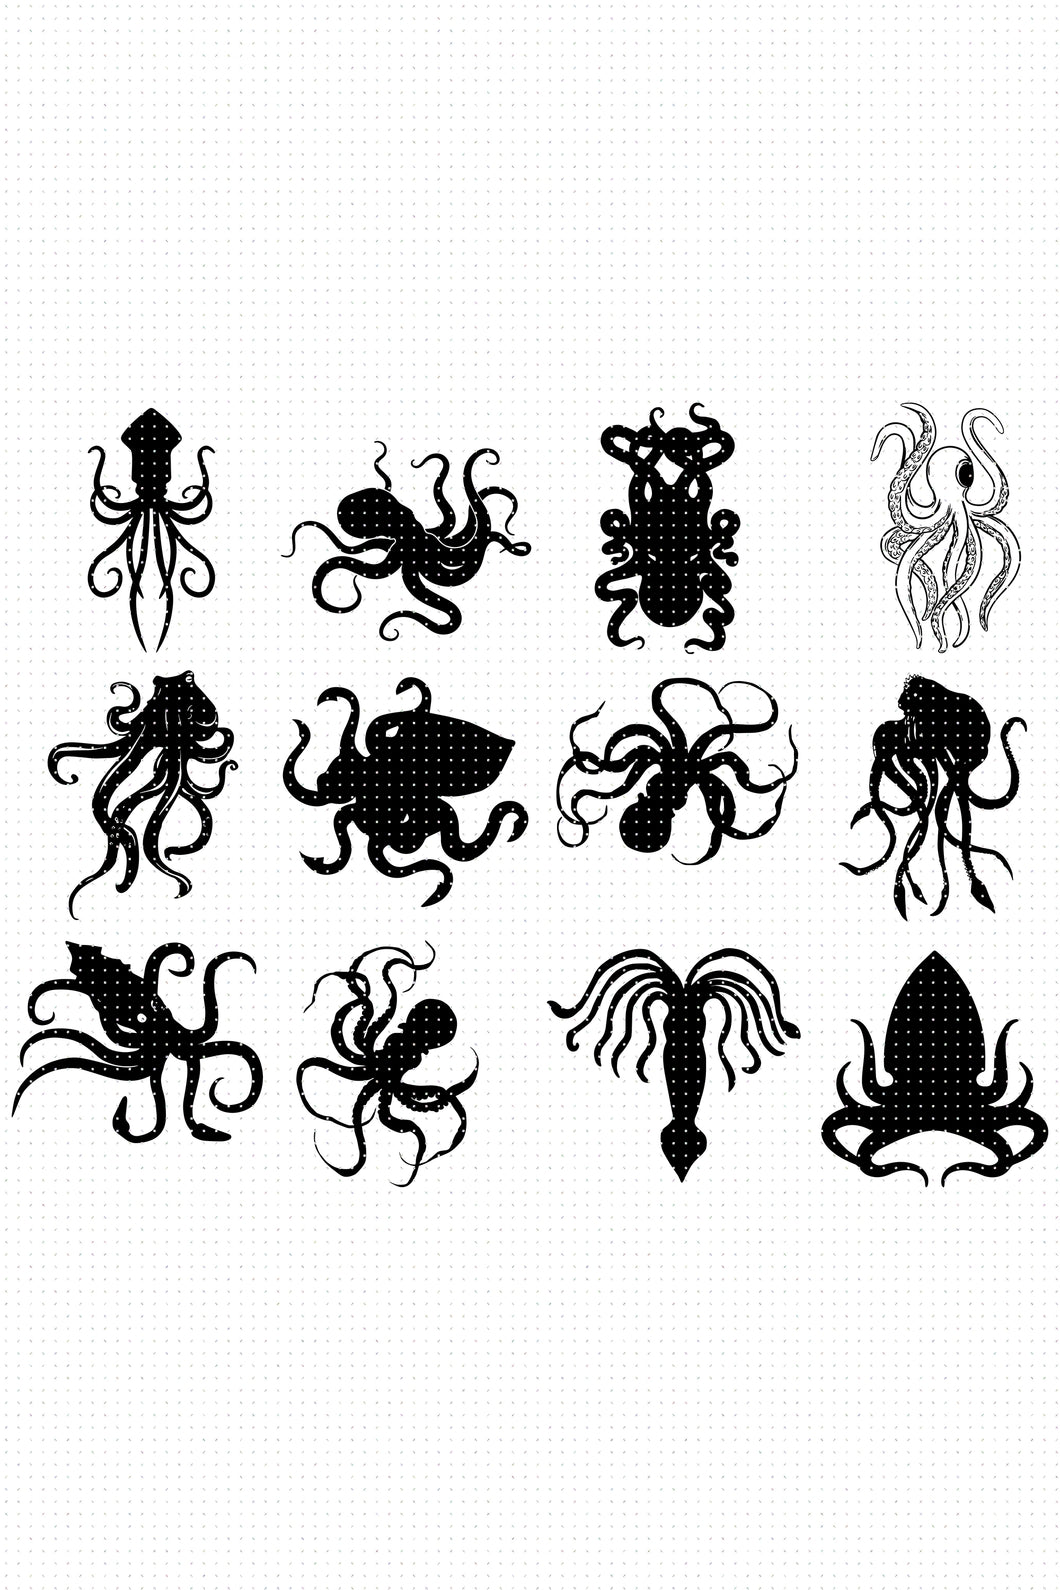 Kraken SVG, Octopus PNG, Giant Squid DXF, clipart, EPS, vector cut file instant download